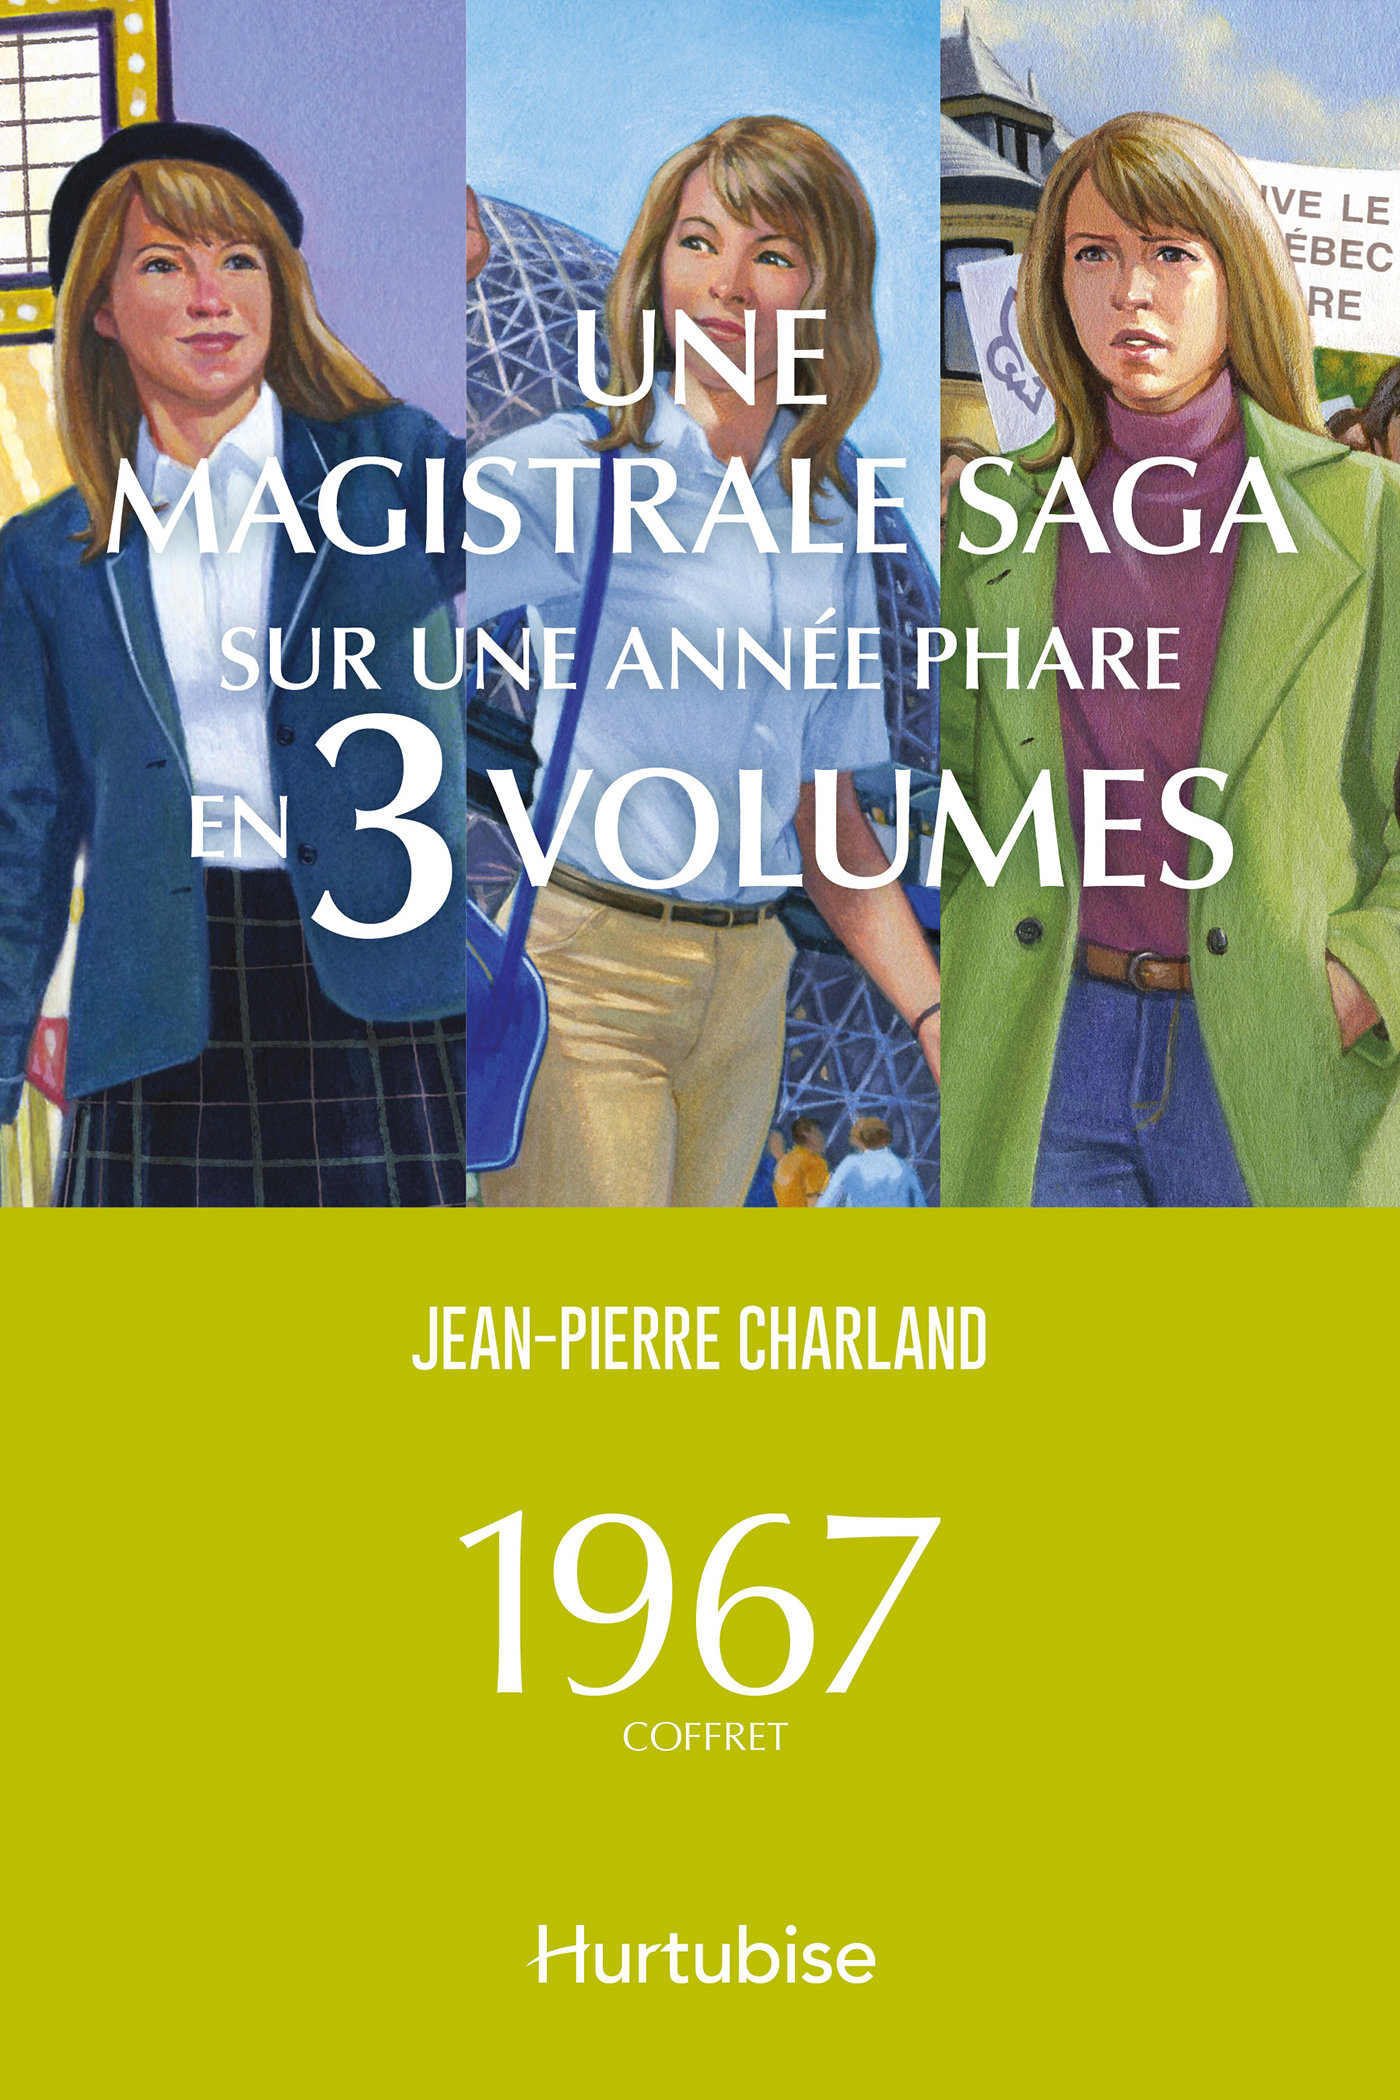 1967 - Jean-Pierre Charland